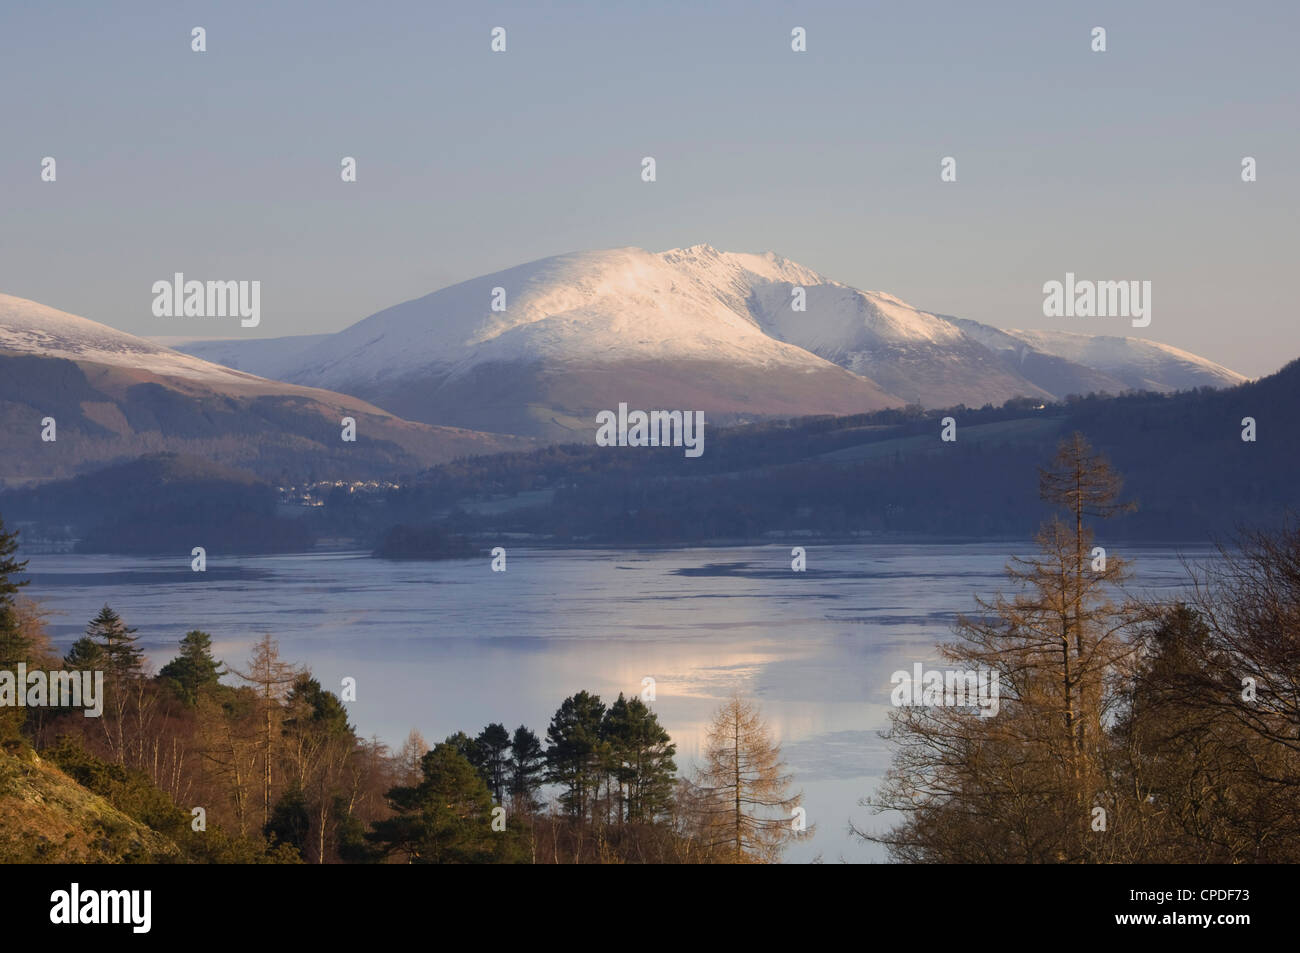 View from Grange road over Derwentwater to Saddleback [Blencathra], Lake District National Park, Cumbria, England, - Stock Image